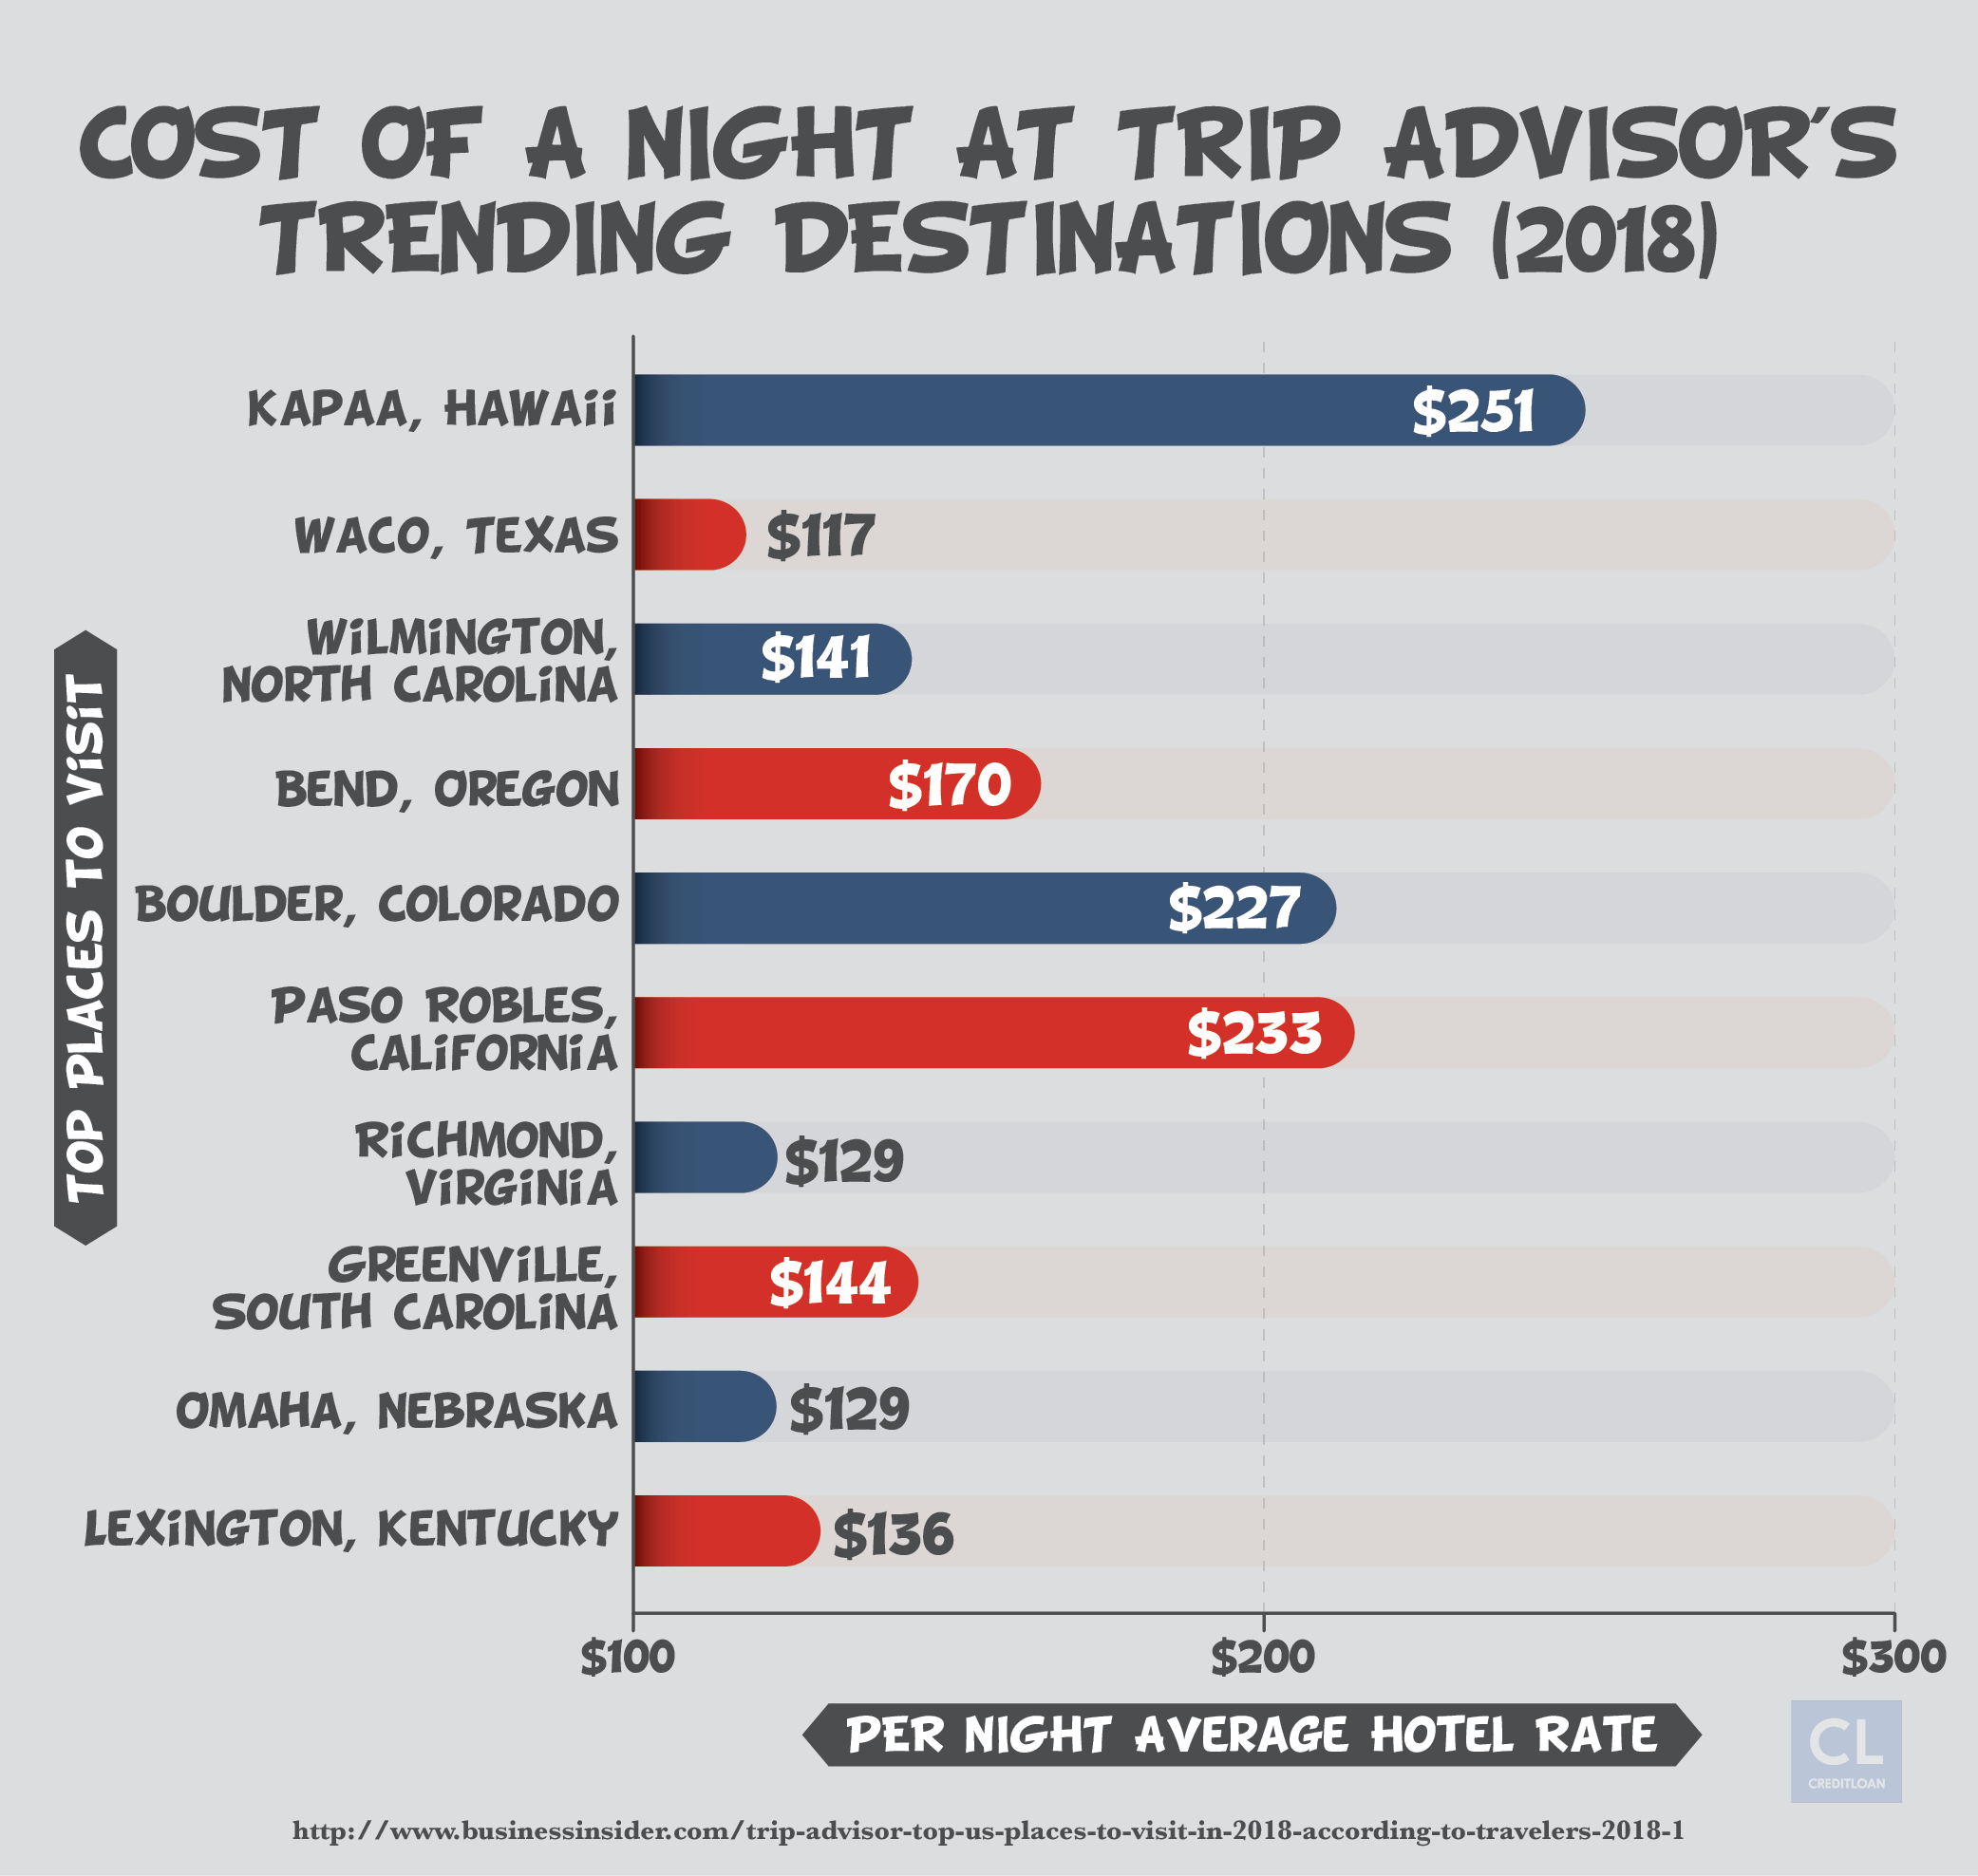 2018 Cost of a Night at Trip Advisor's Trending Destinations